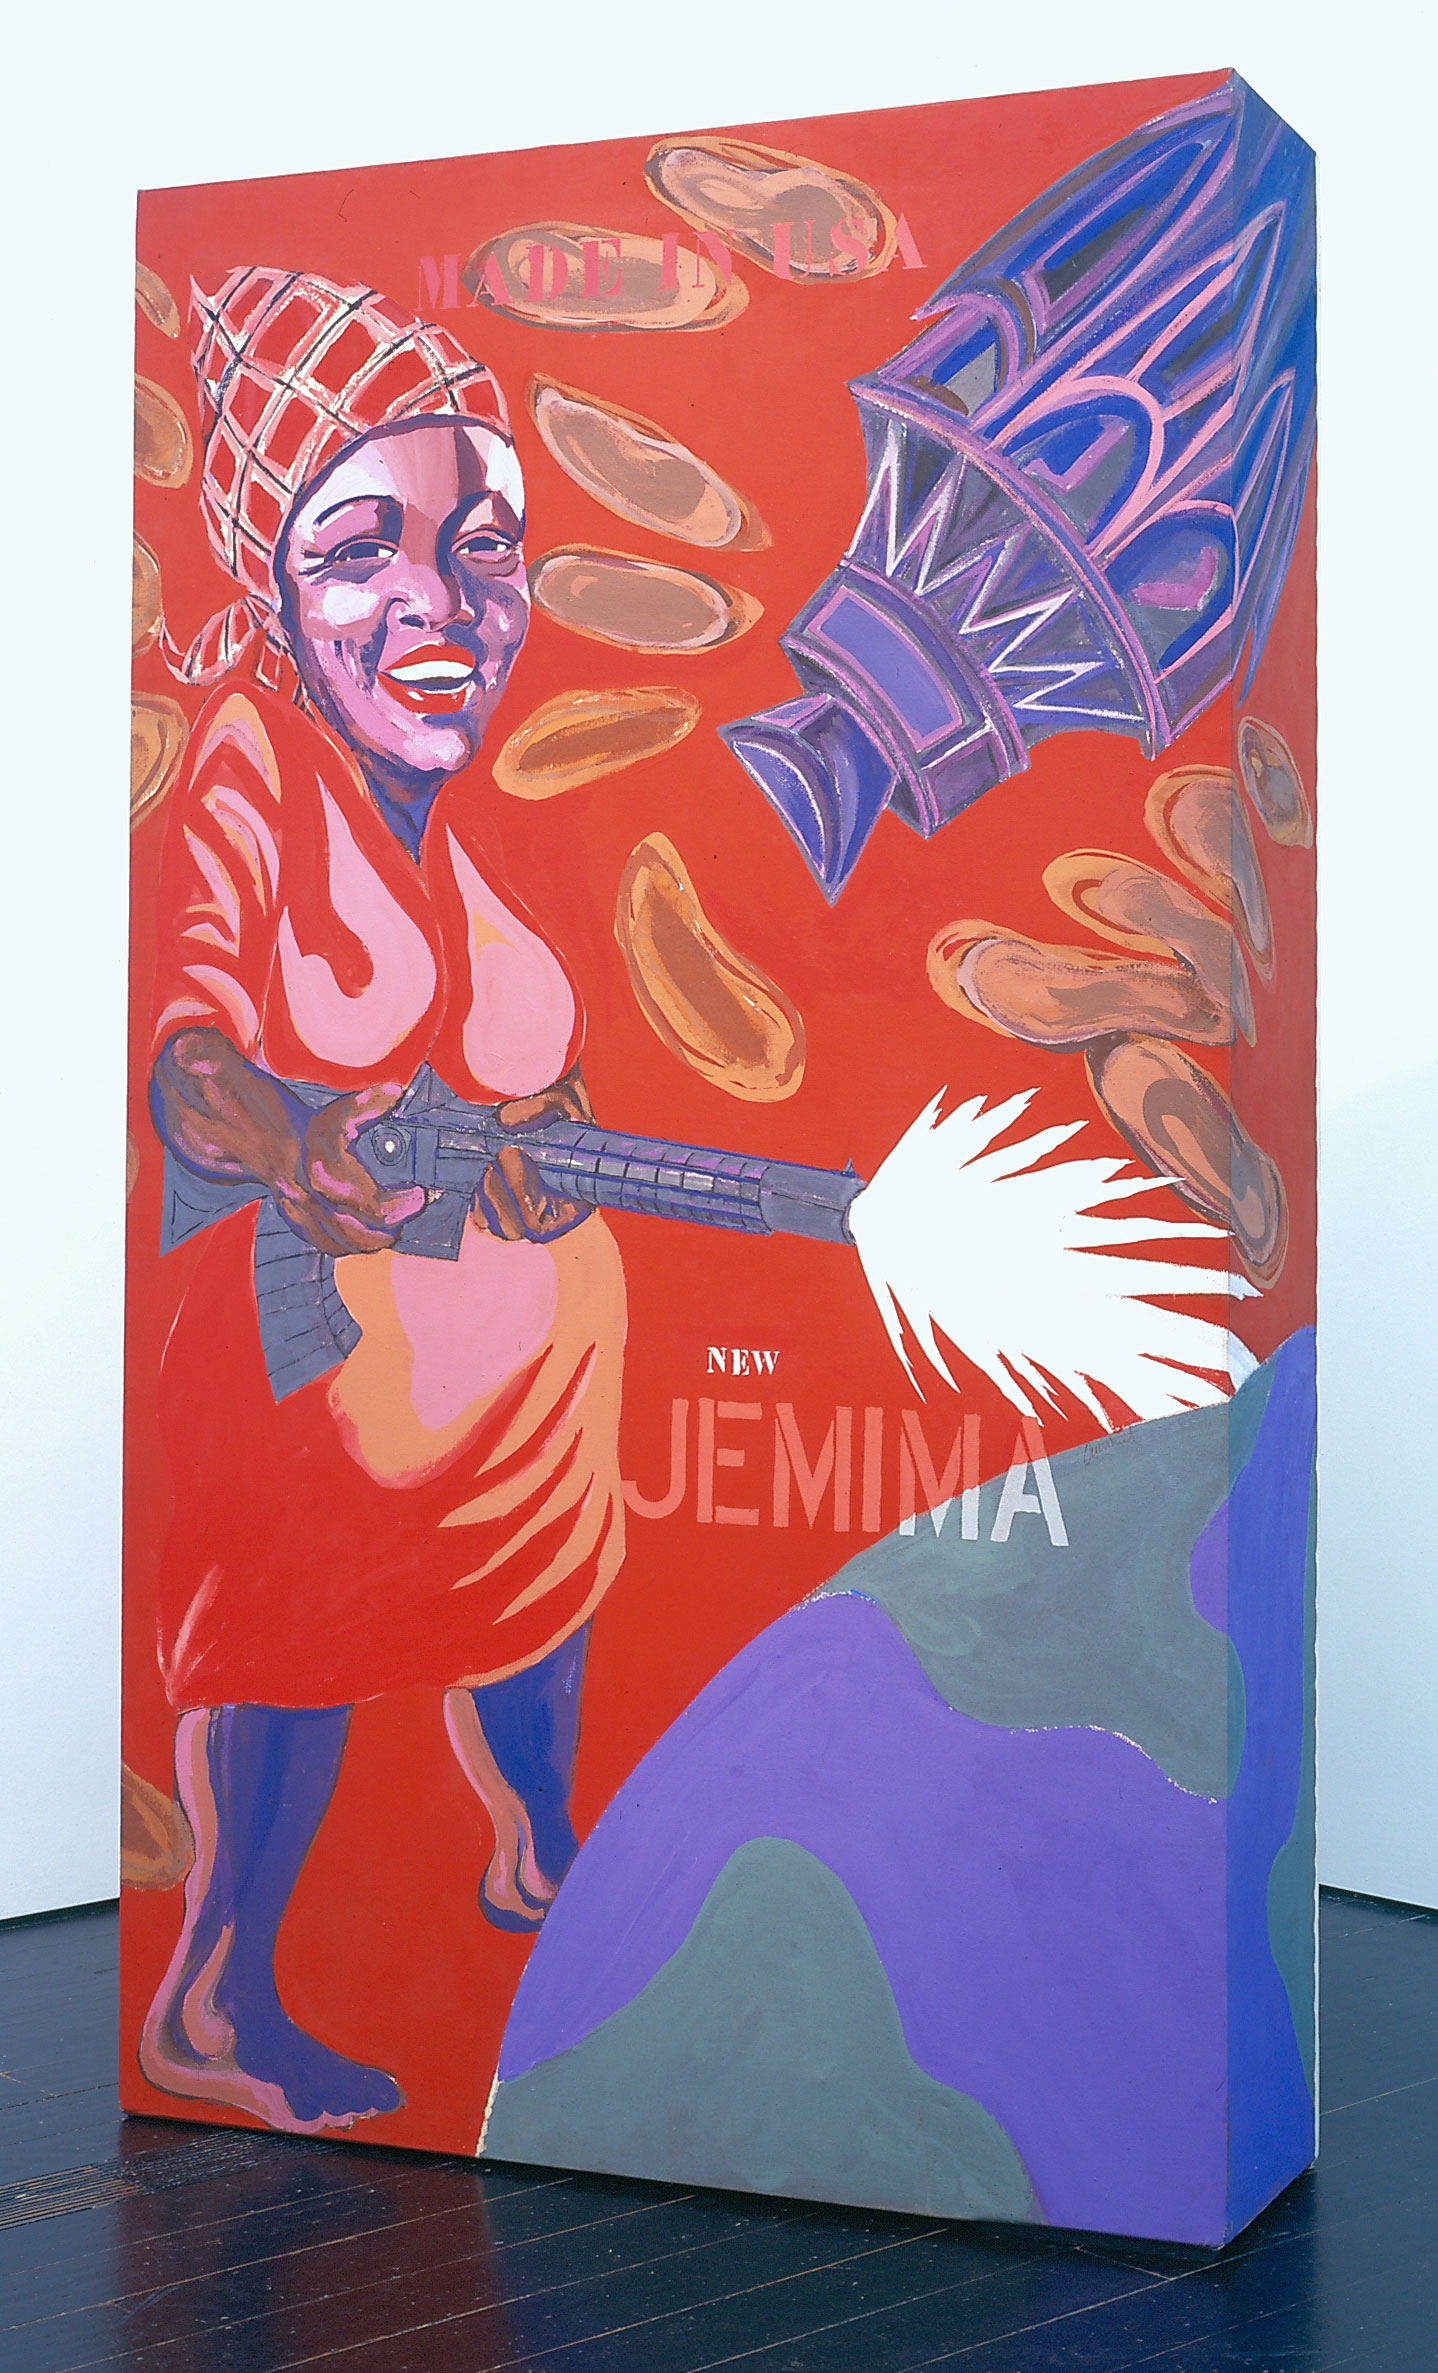 The New Jemima, by Joe Overstreet, 1964